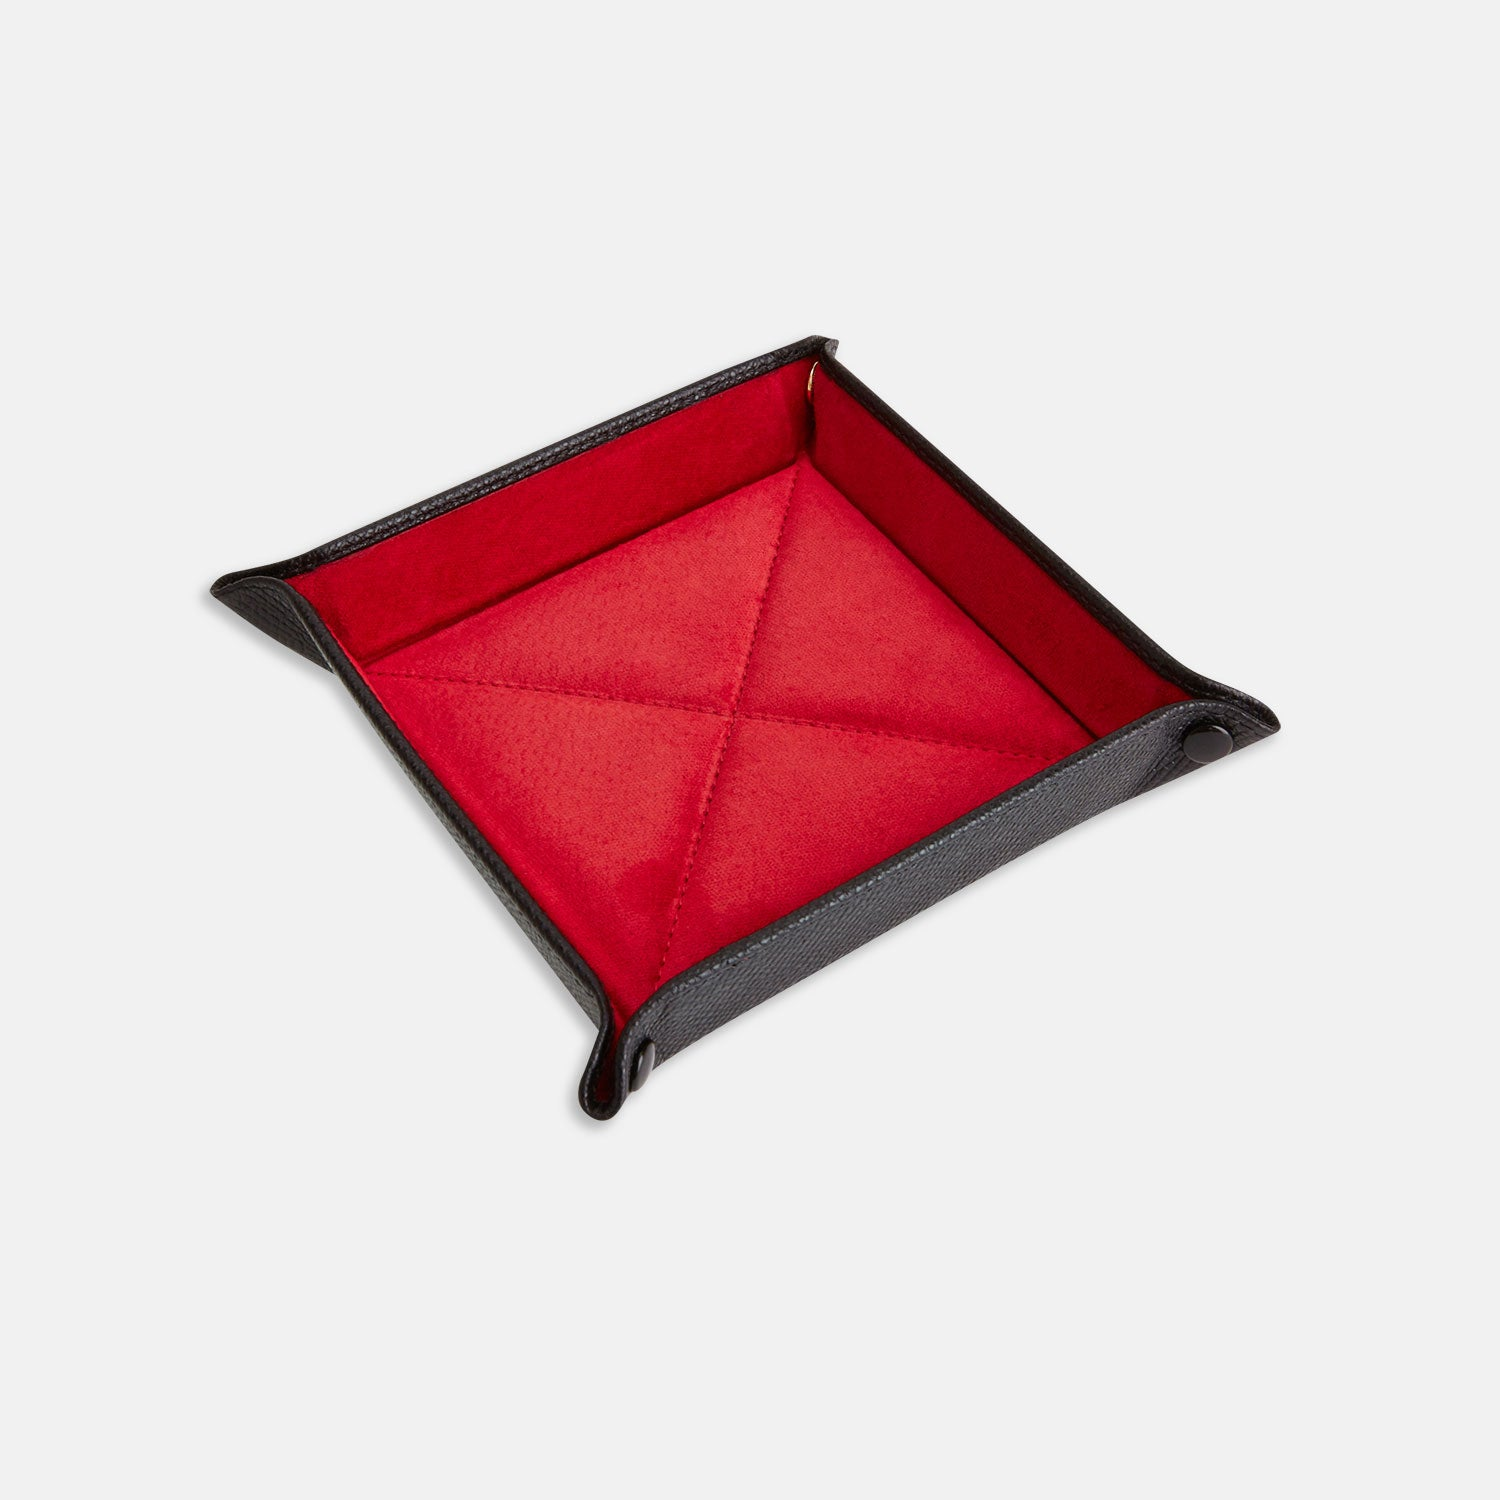 Black and Red Square Leather Travel Tray